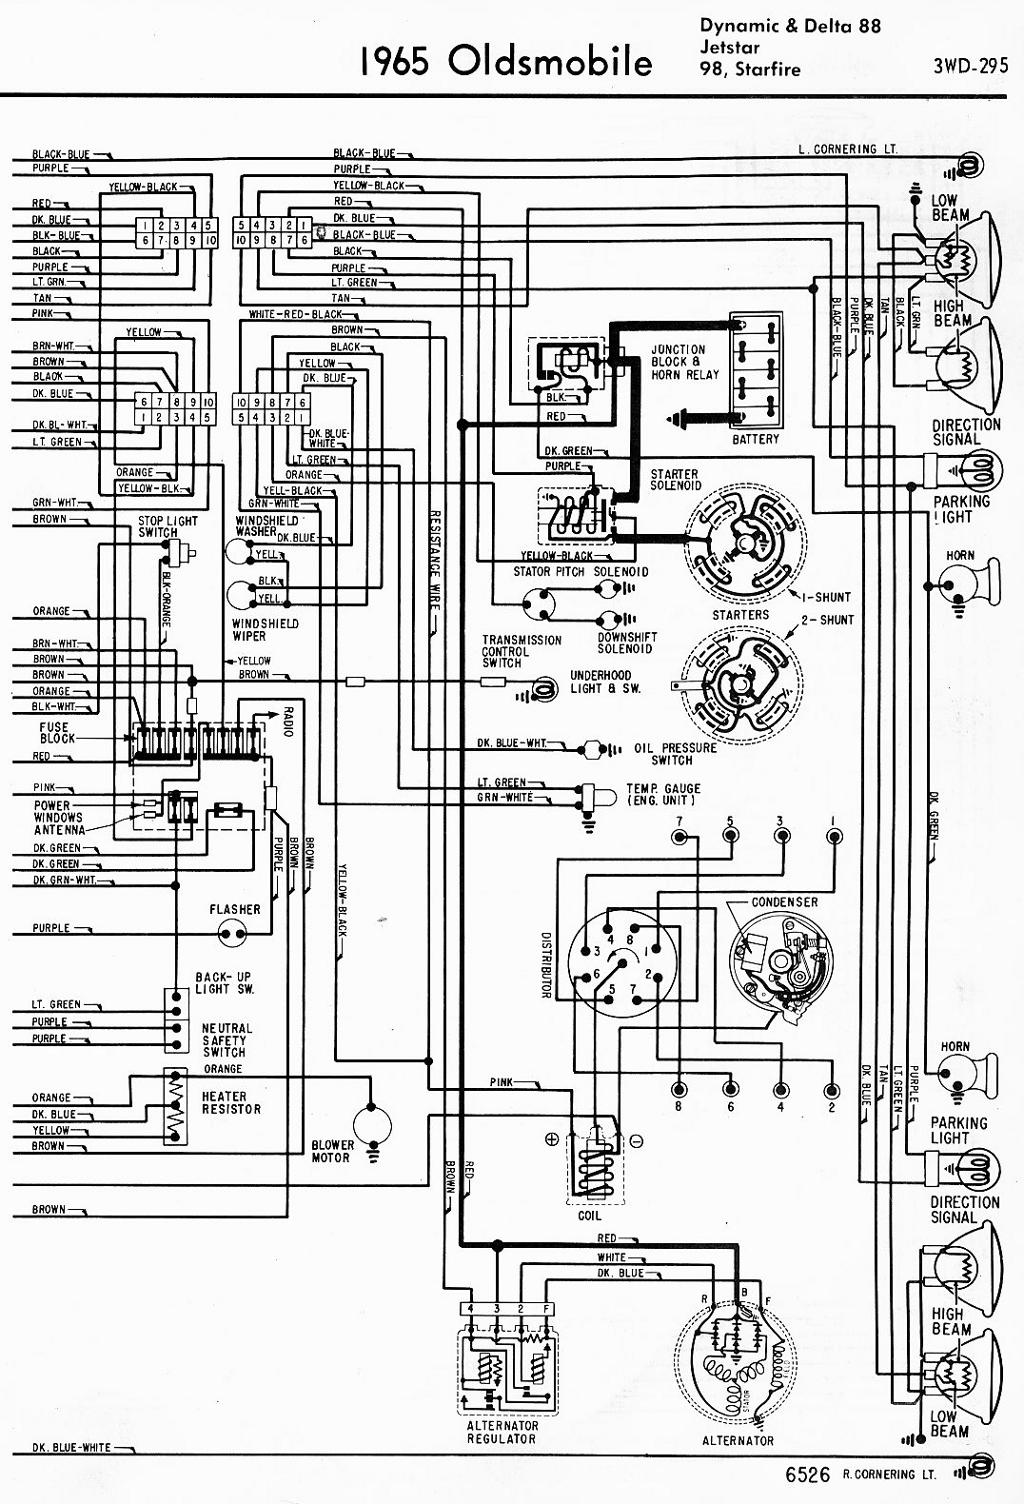 small resolution of car radio wiring diagram 1998 oldsmobile simple wiring schema timing chain diagram free download wiring diagram schematic